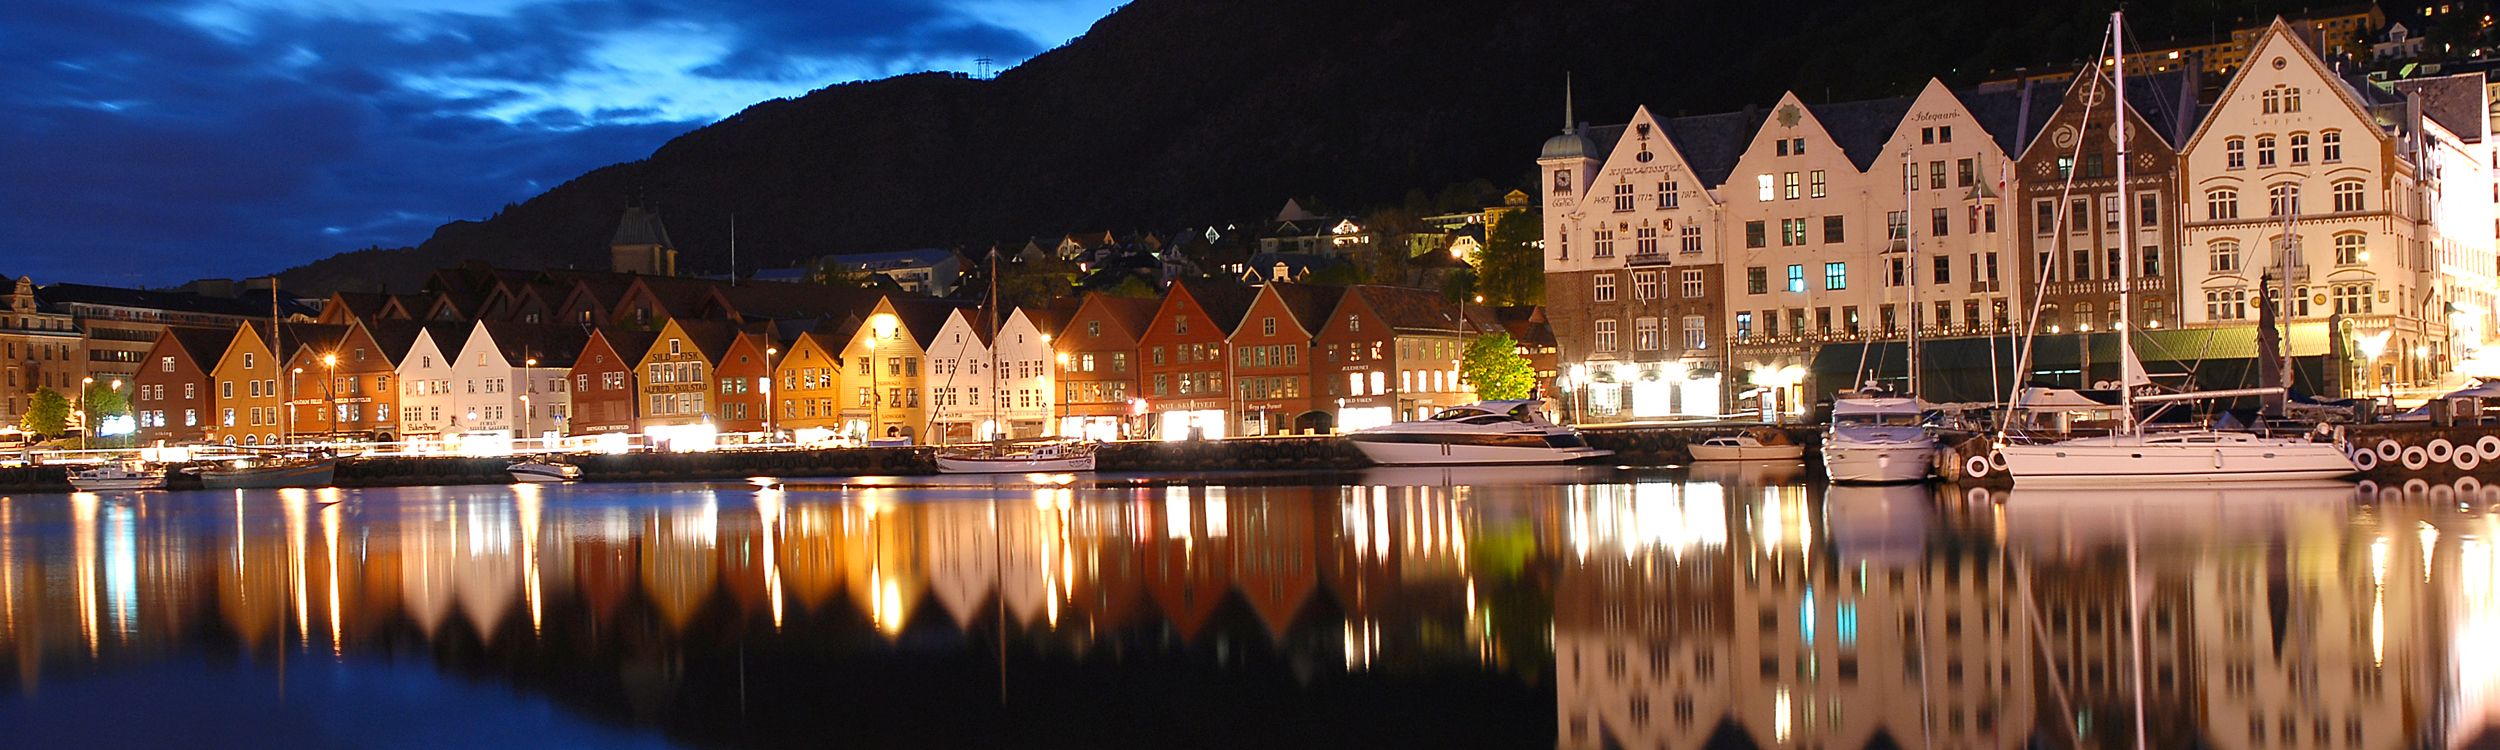 Bergen_by_night2